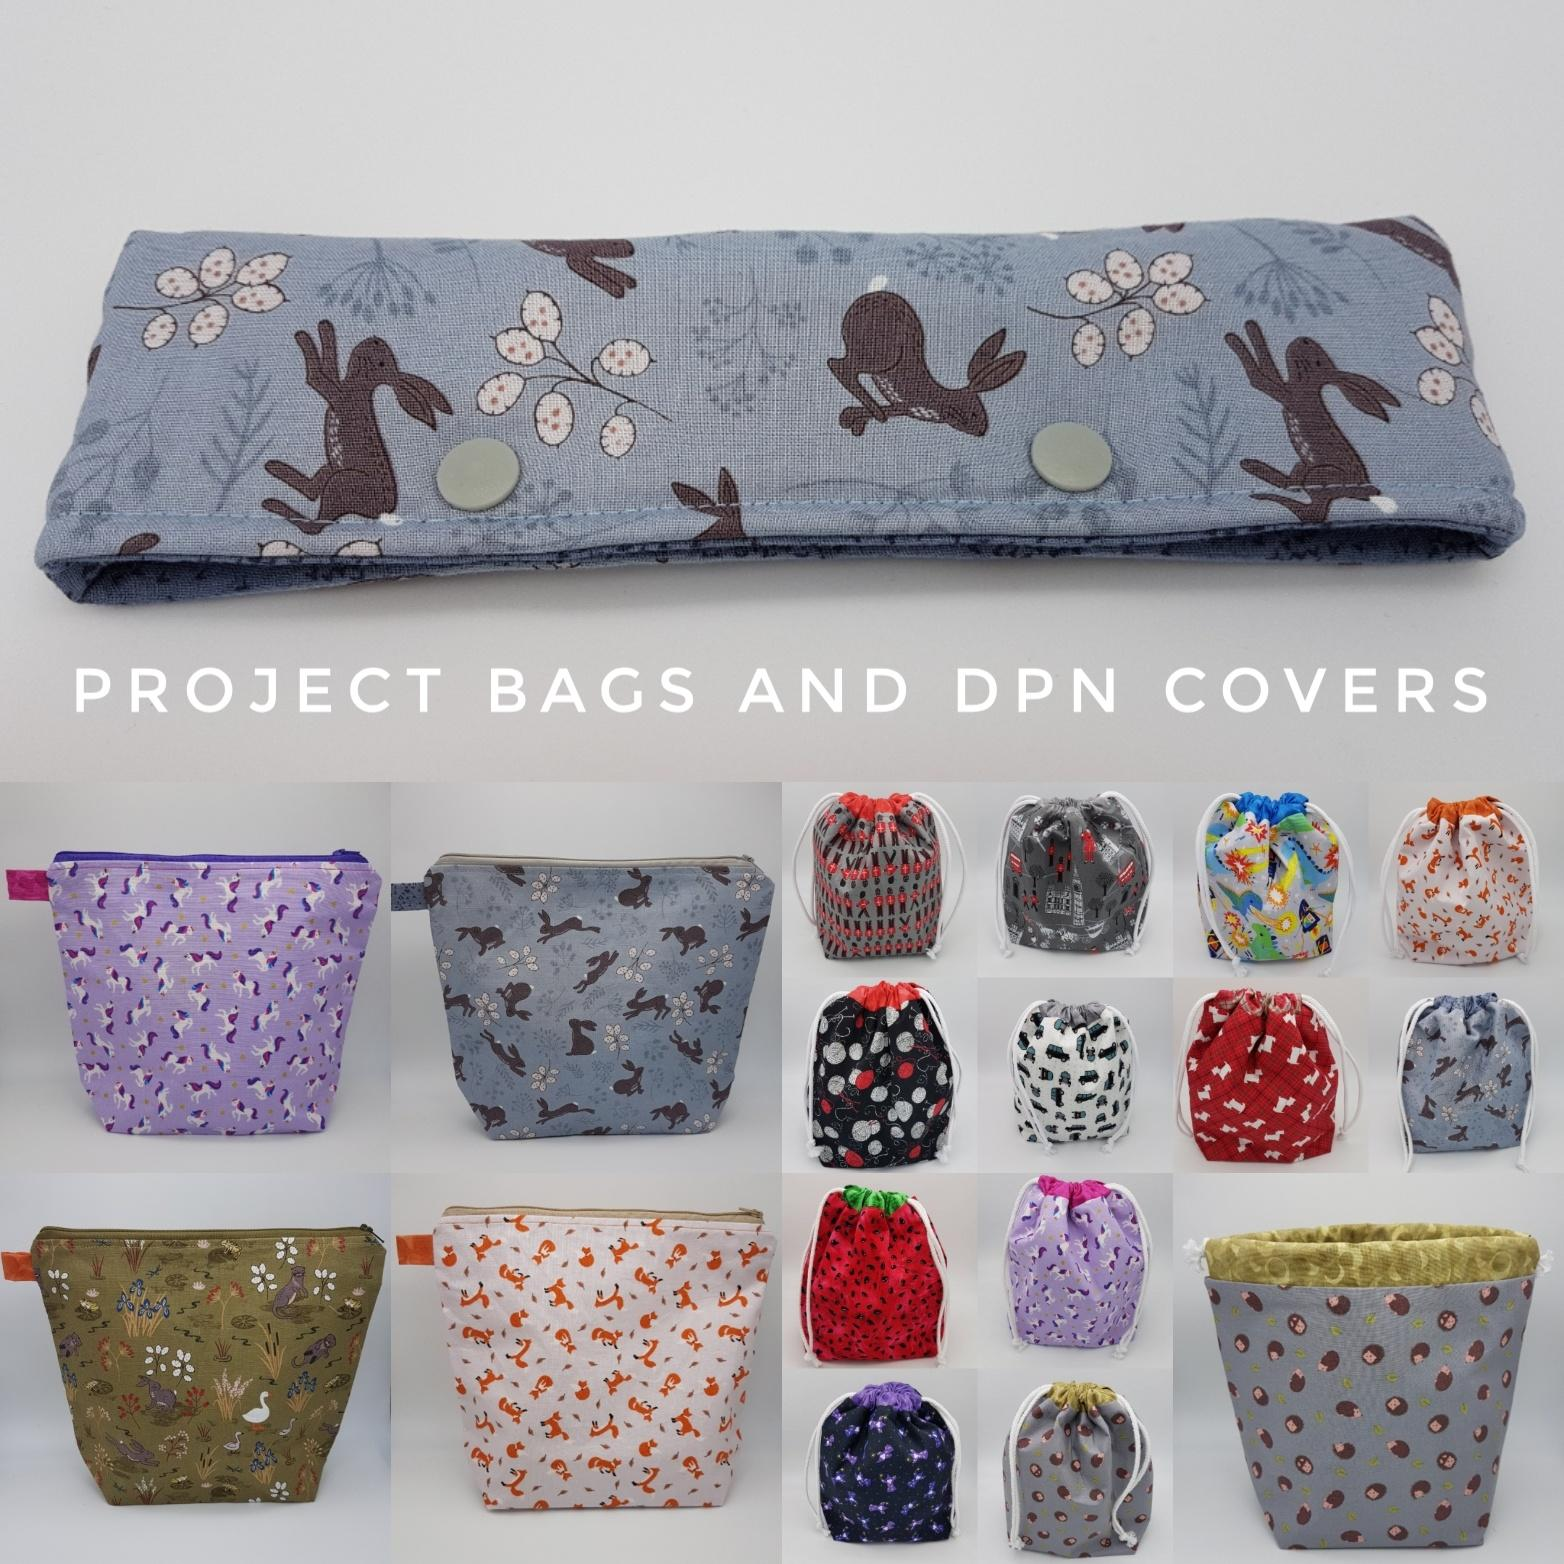 Project Bags & DPN covers